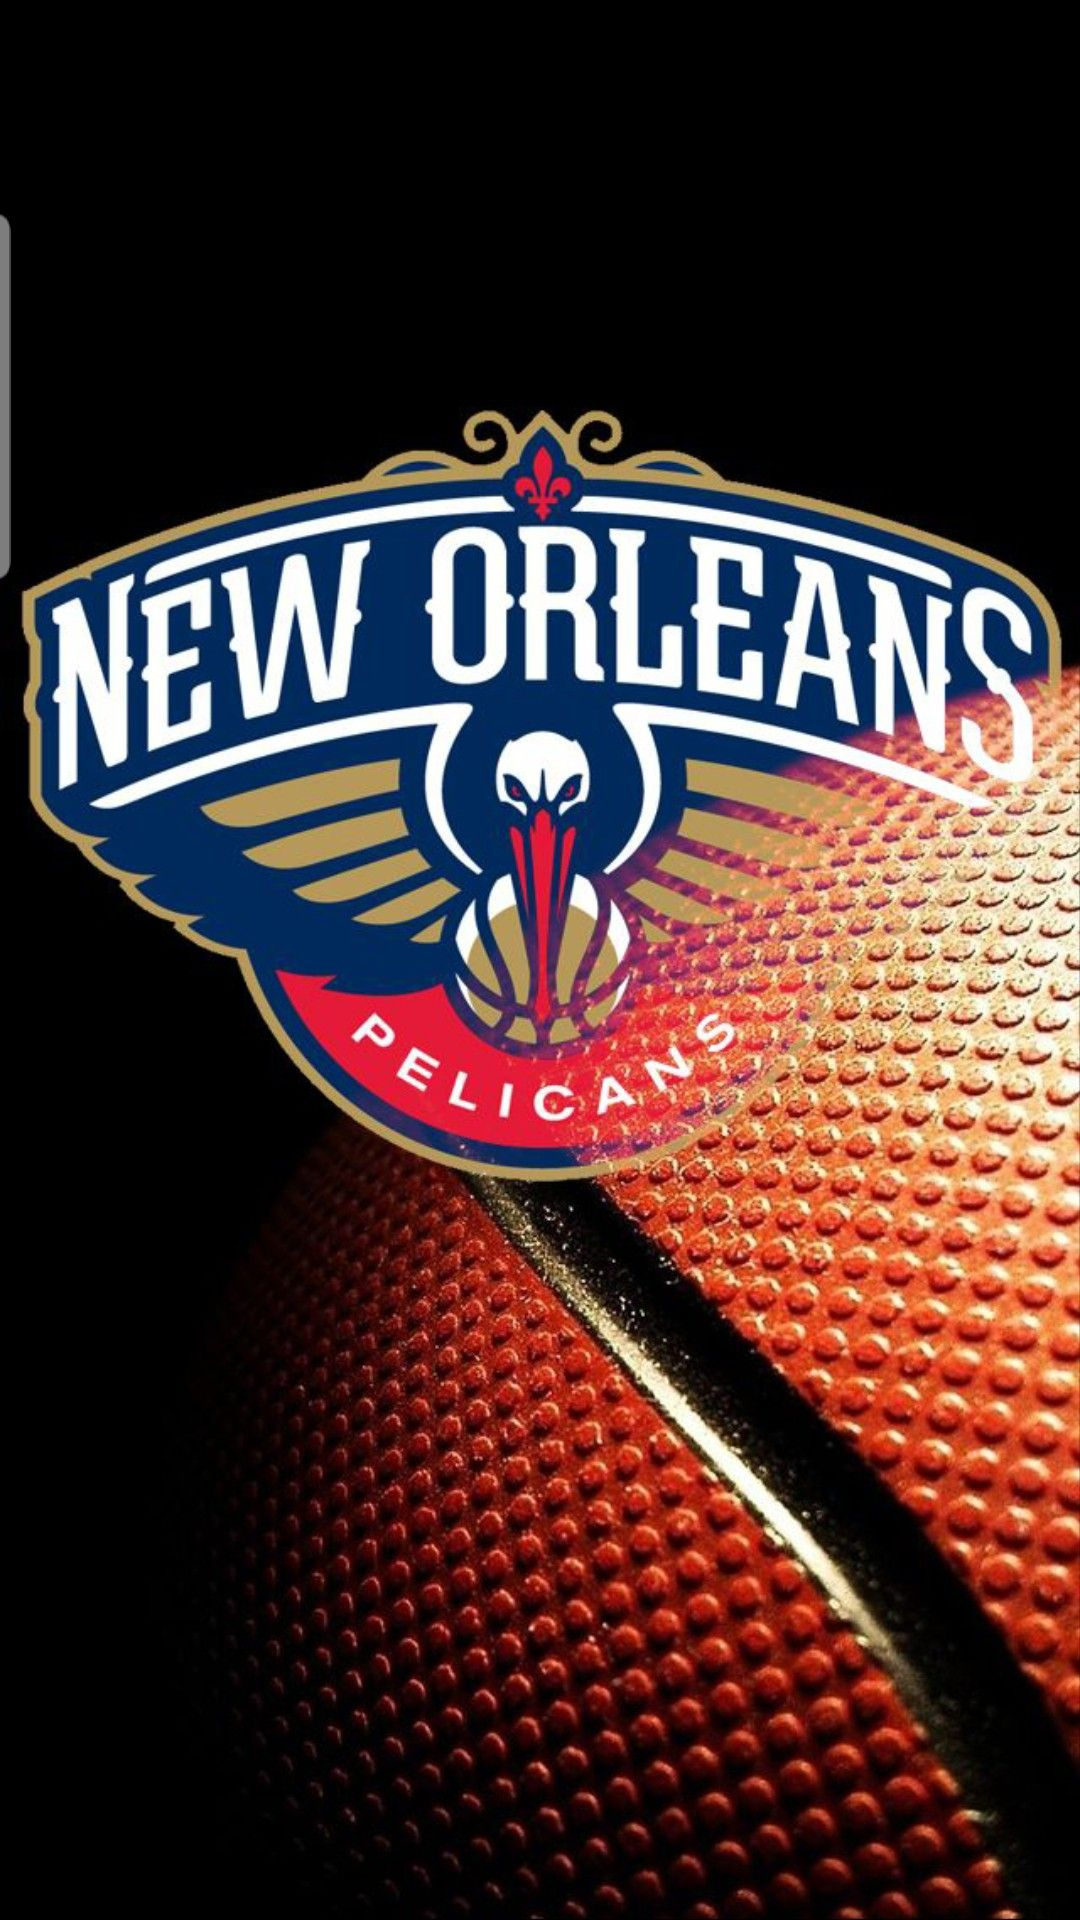 Pin By Archie Douglas On Sportz Wallpaperz Nba Wallpapers New